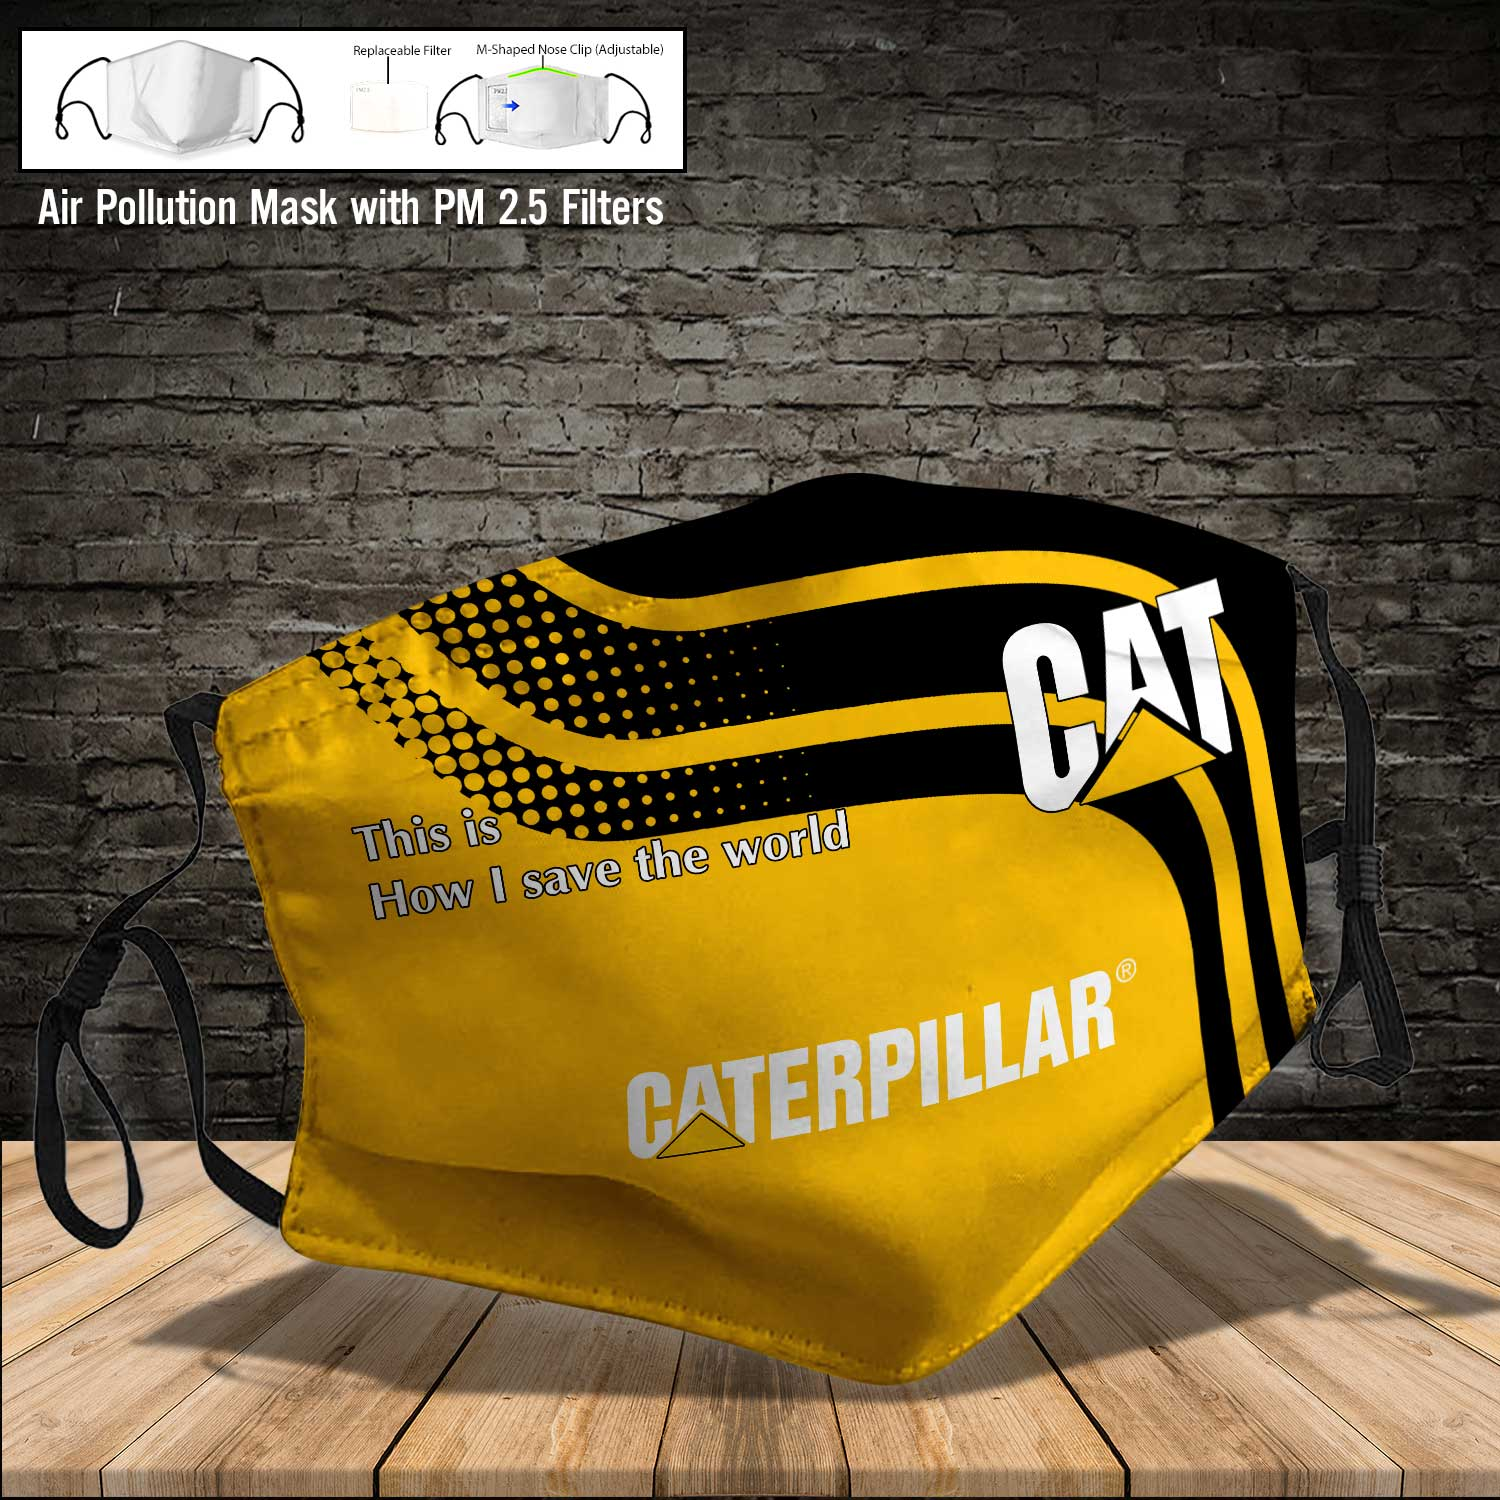 Caterpillar inc this is how i save the world face mask 4